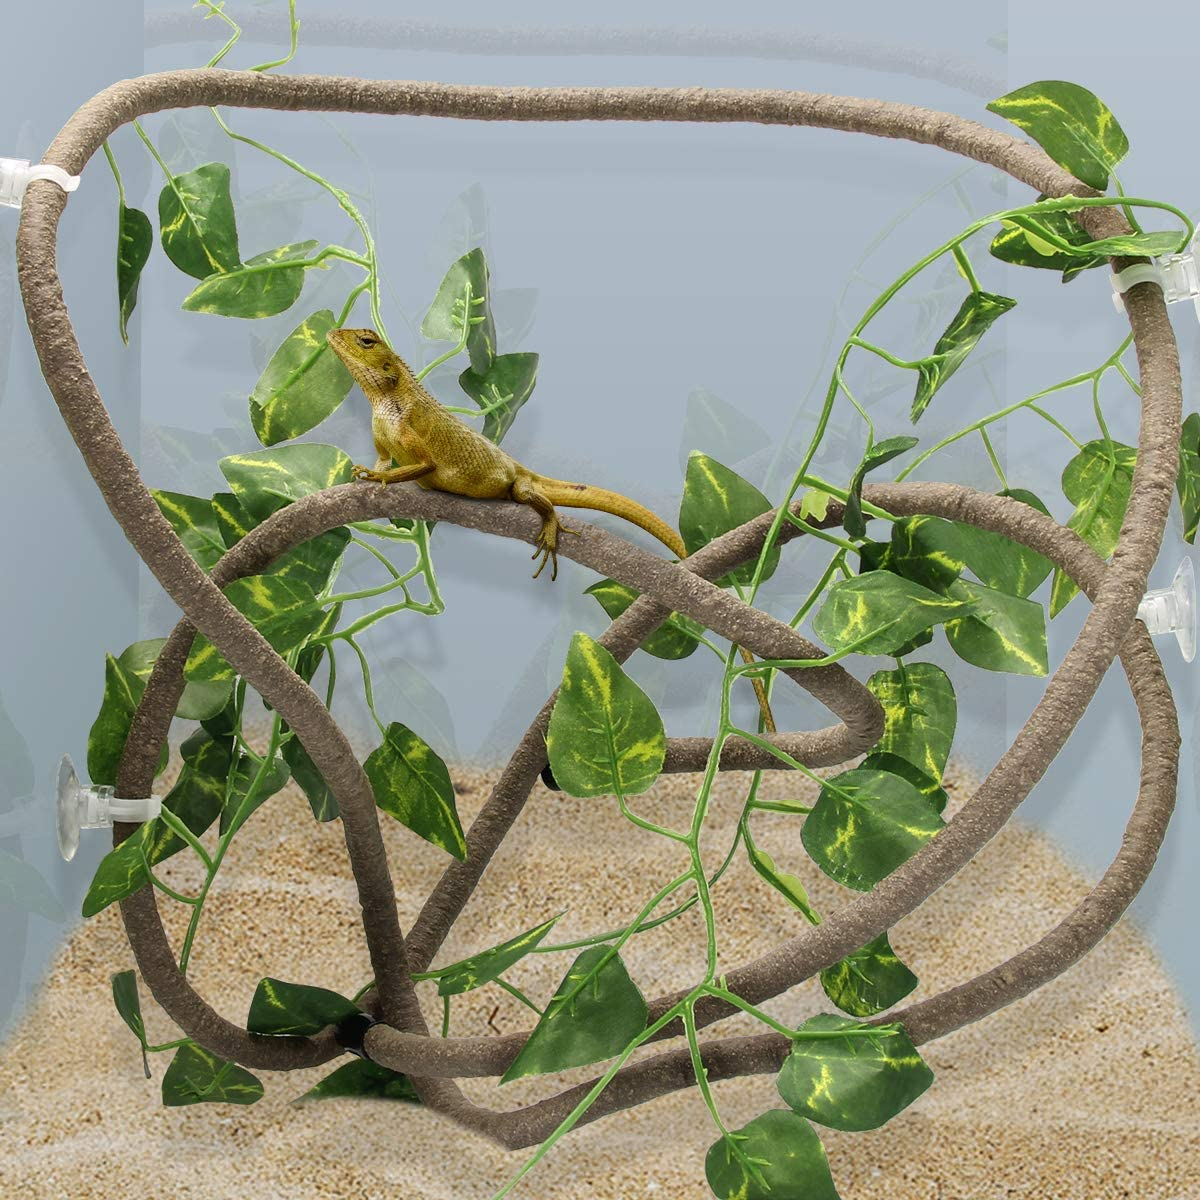 Coolrunner 8FT Reptile Vines and Flexible Reptile Leaves with Suction Cups Jungle Climber Long Vines Habitat Decor for Climbing, Chameleon, Lizards, Gecko